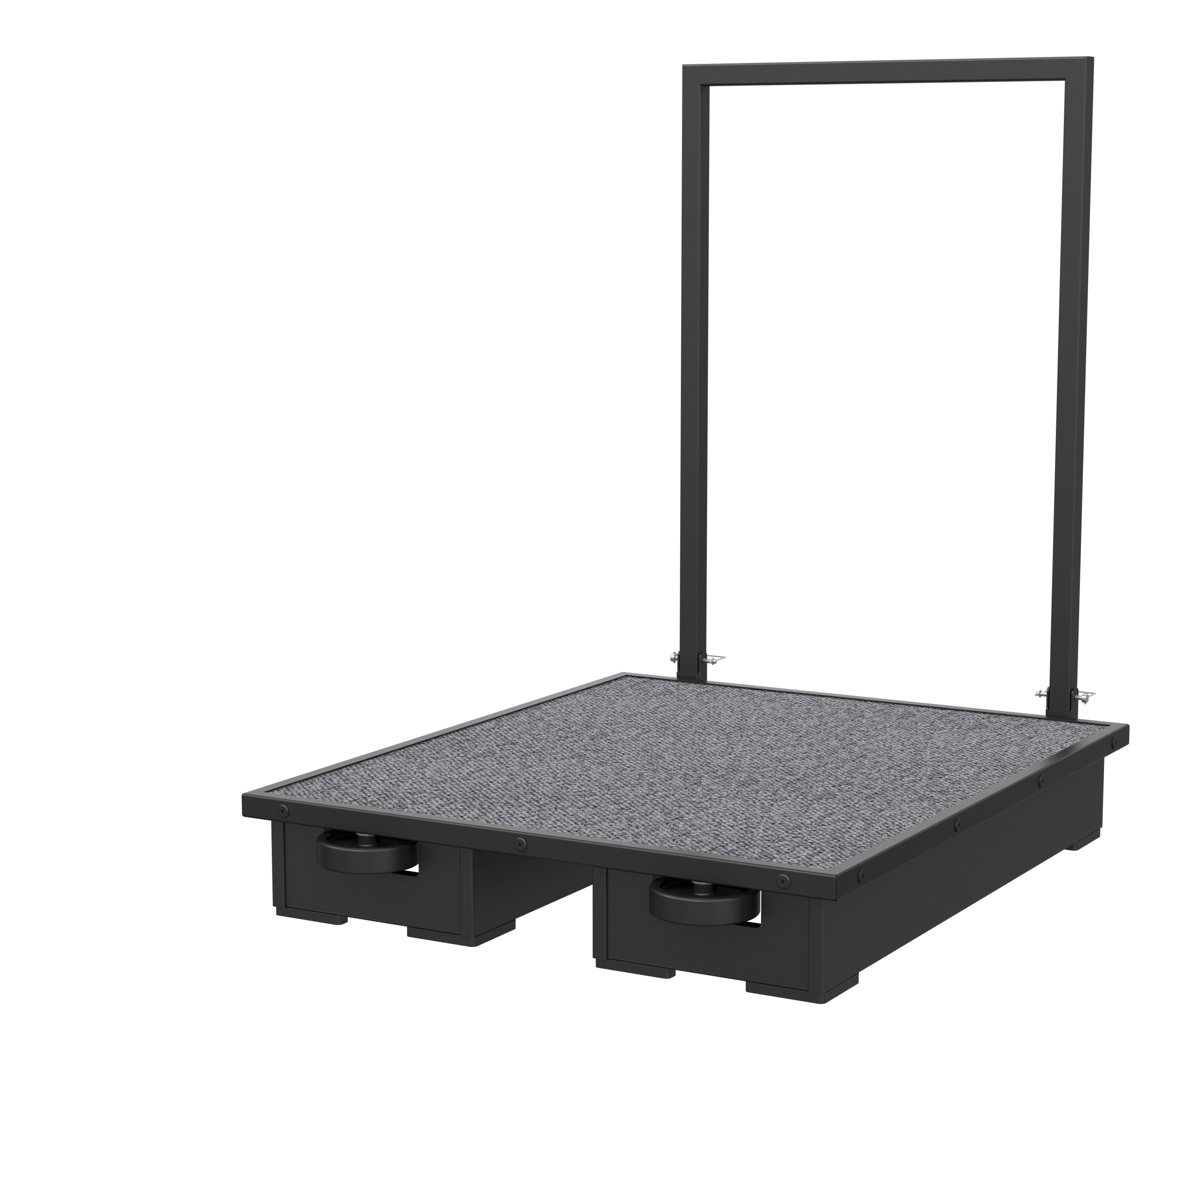 Bs351 Conductor S Podium With Rail Marco Group Inc